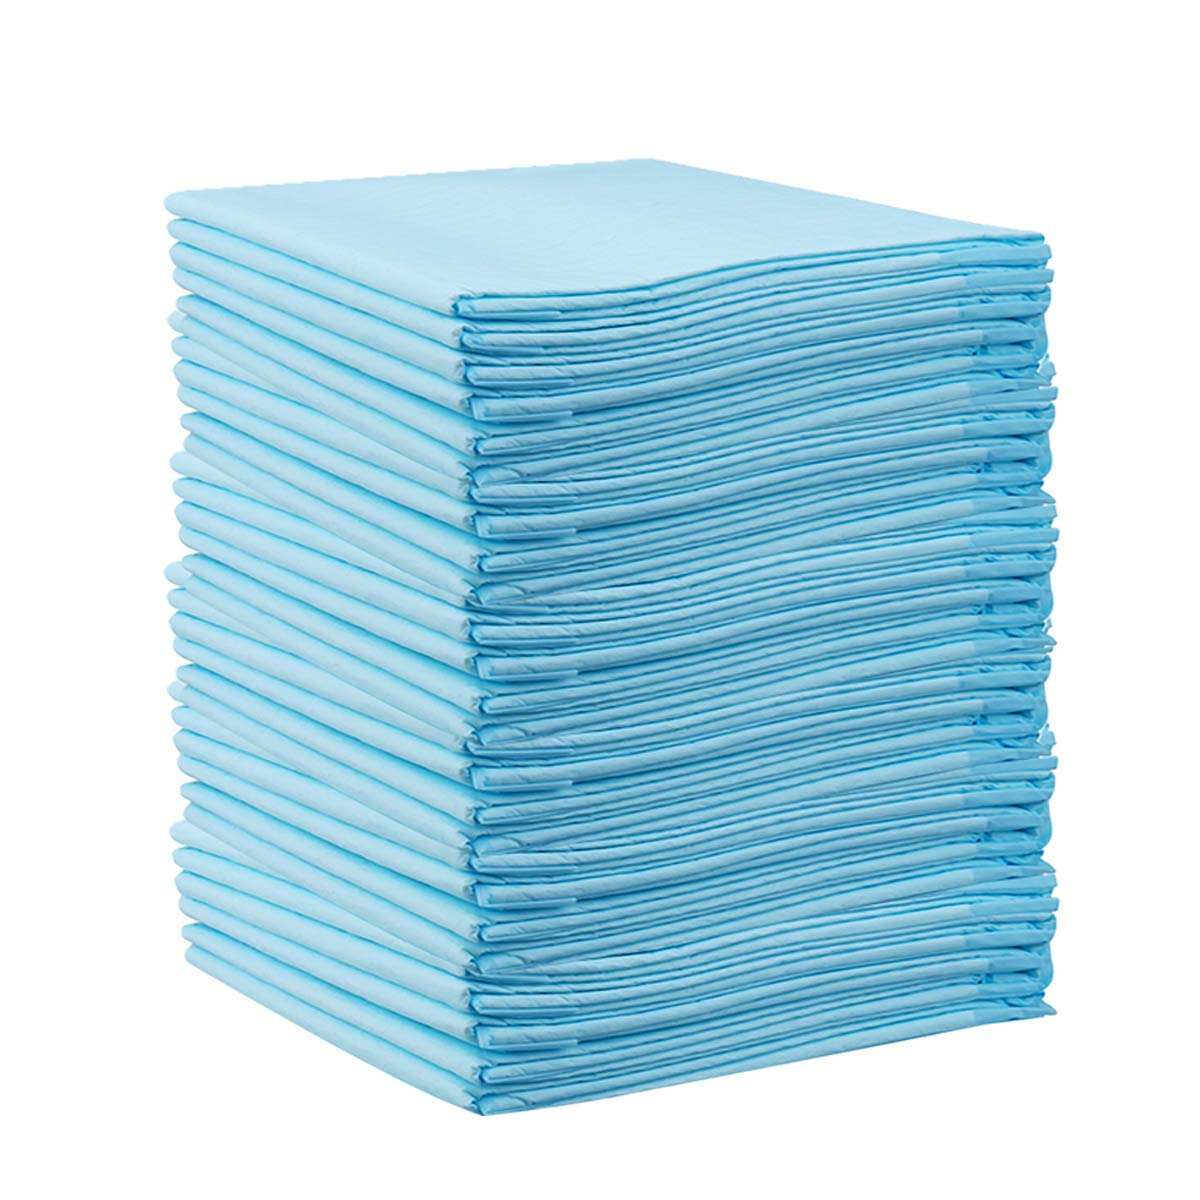 Baby Underpads 50 Pack(18×24 inch), Disposable Changing Pad, Reusable Portable Diaper Changing Mat, Leak-Proof Breathable Underpads Mattress Play Pad Sheet Protector.